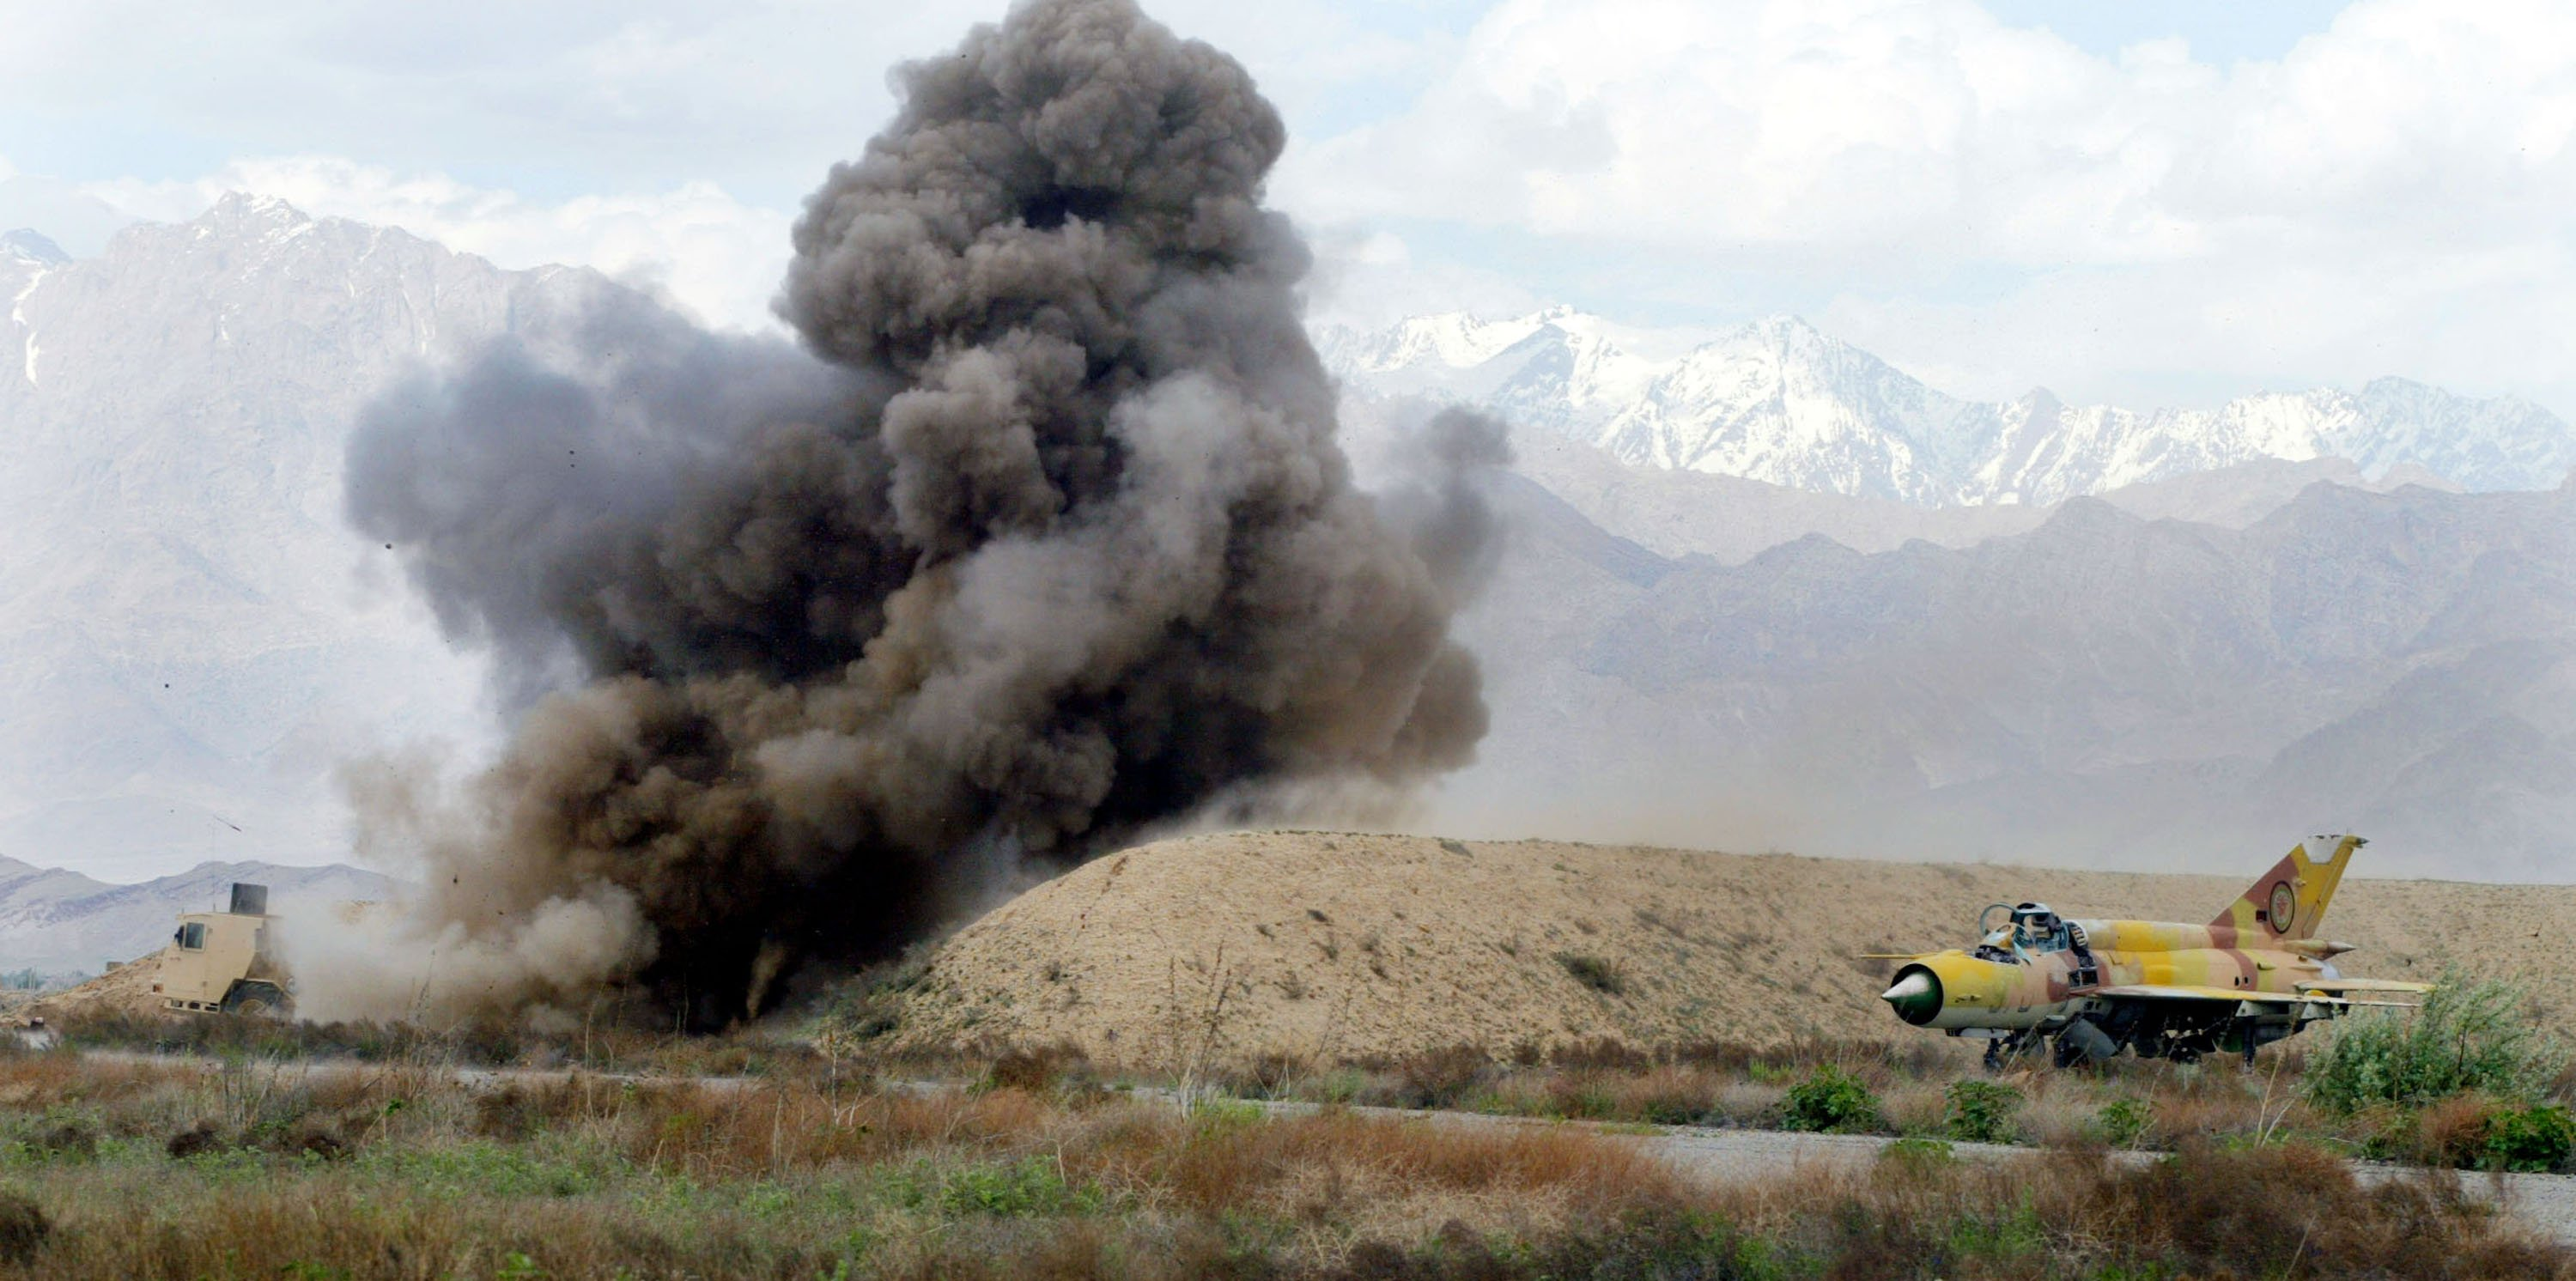 A Norwegian mine clearing machine detonates a land mine useing a flail, a series of chains that rotate and beat the ground, April 20, 2002 at the Bagram Air Base in Afghanistan. An old Russian fighter plane still sits in a bunker near the explosion. The Norwegian mine clearing team has been busy over the last months trying to clear the land around the bases in Kandahar and Bagram. (Photo by Joe Raedle/Getty Images)